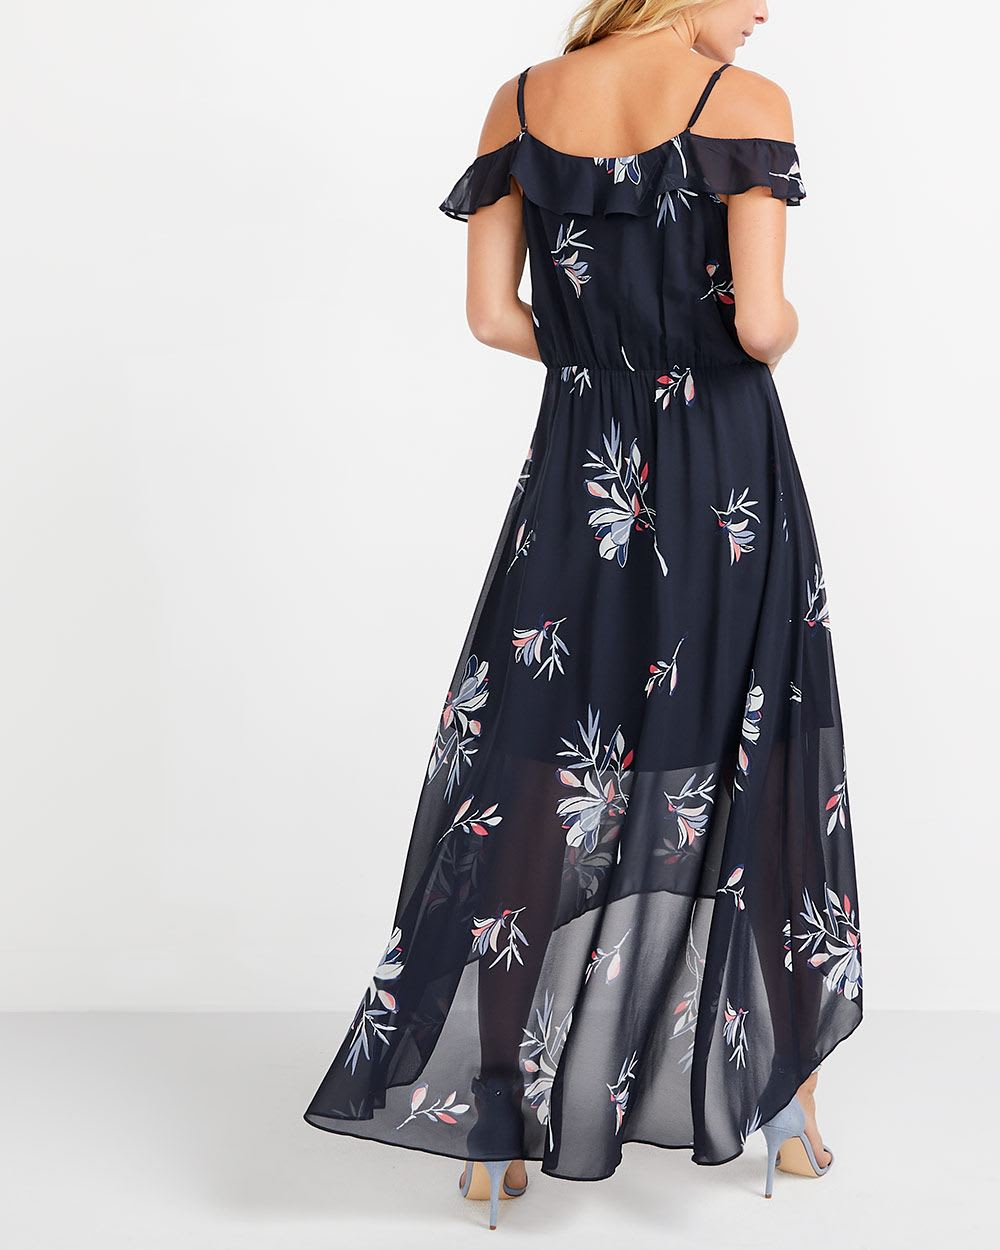 Robe maxi fleurie 2 façons